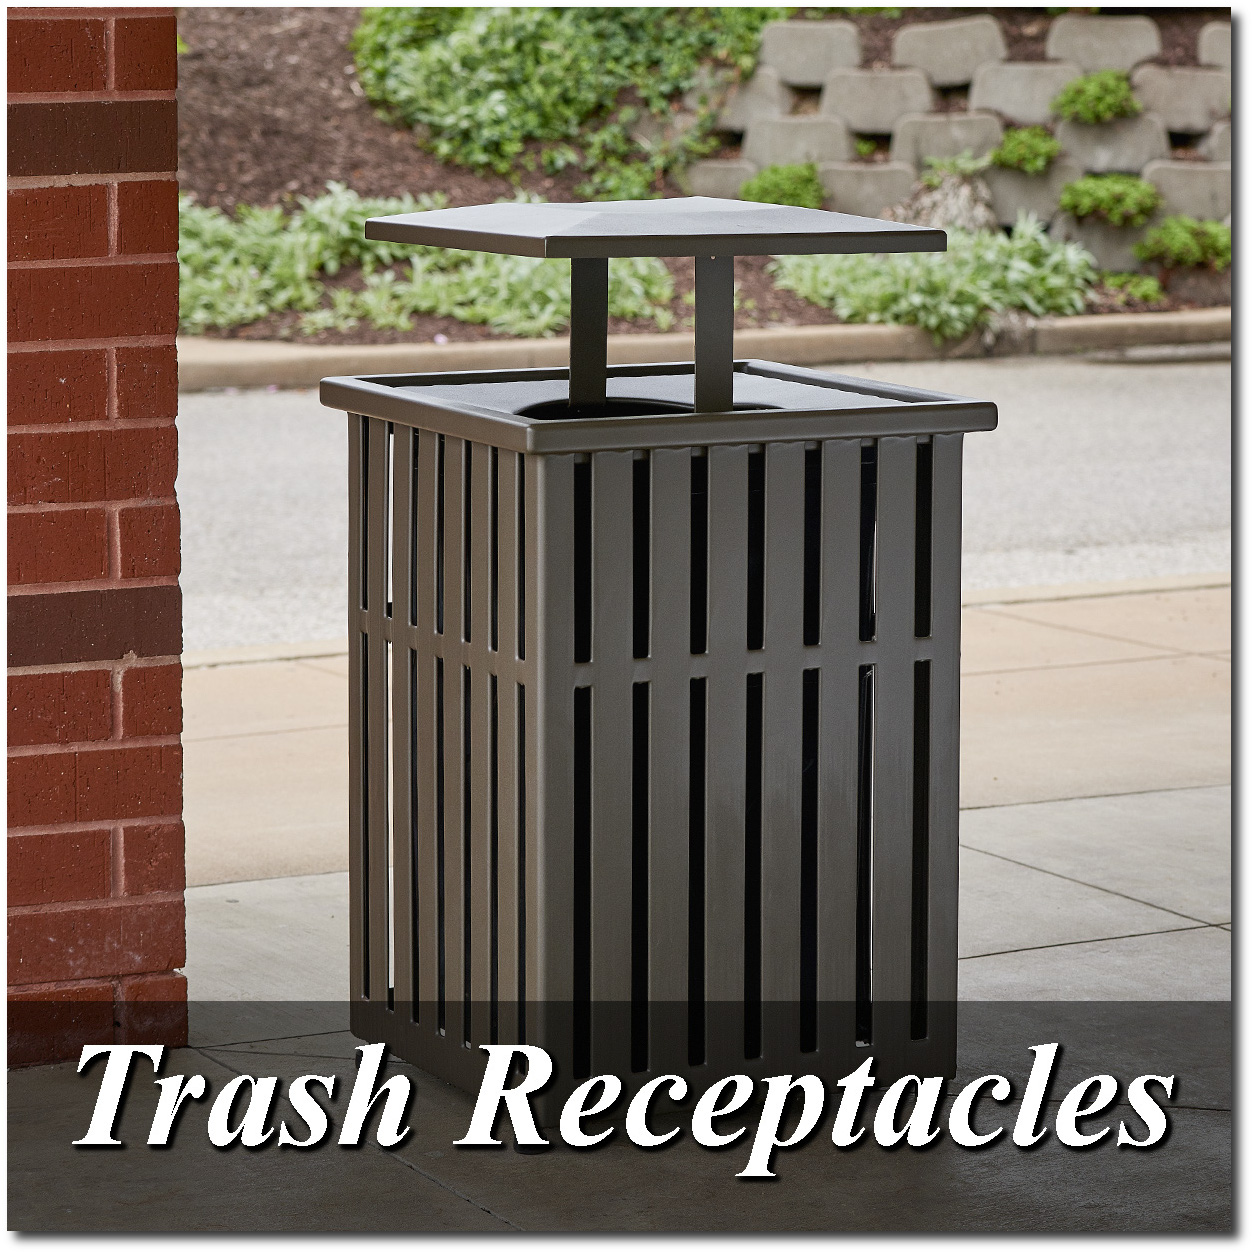 Trash Receptacles Overview